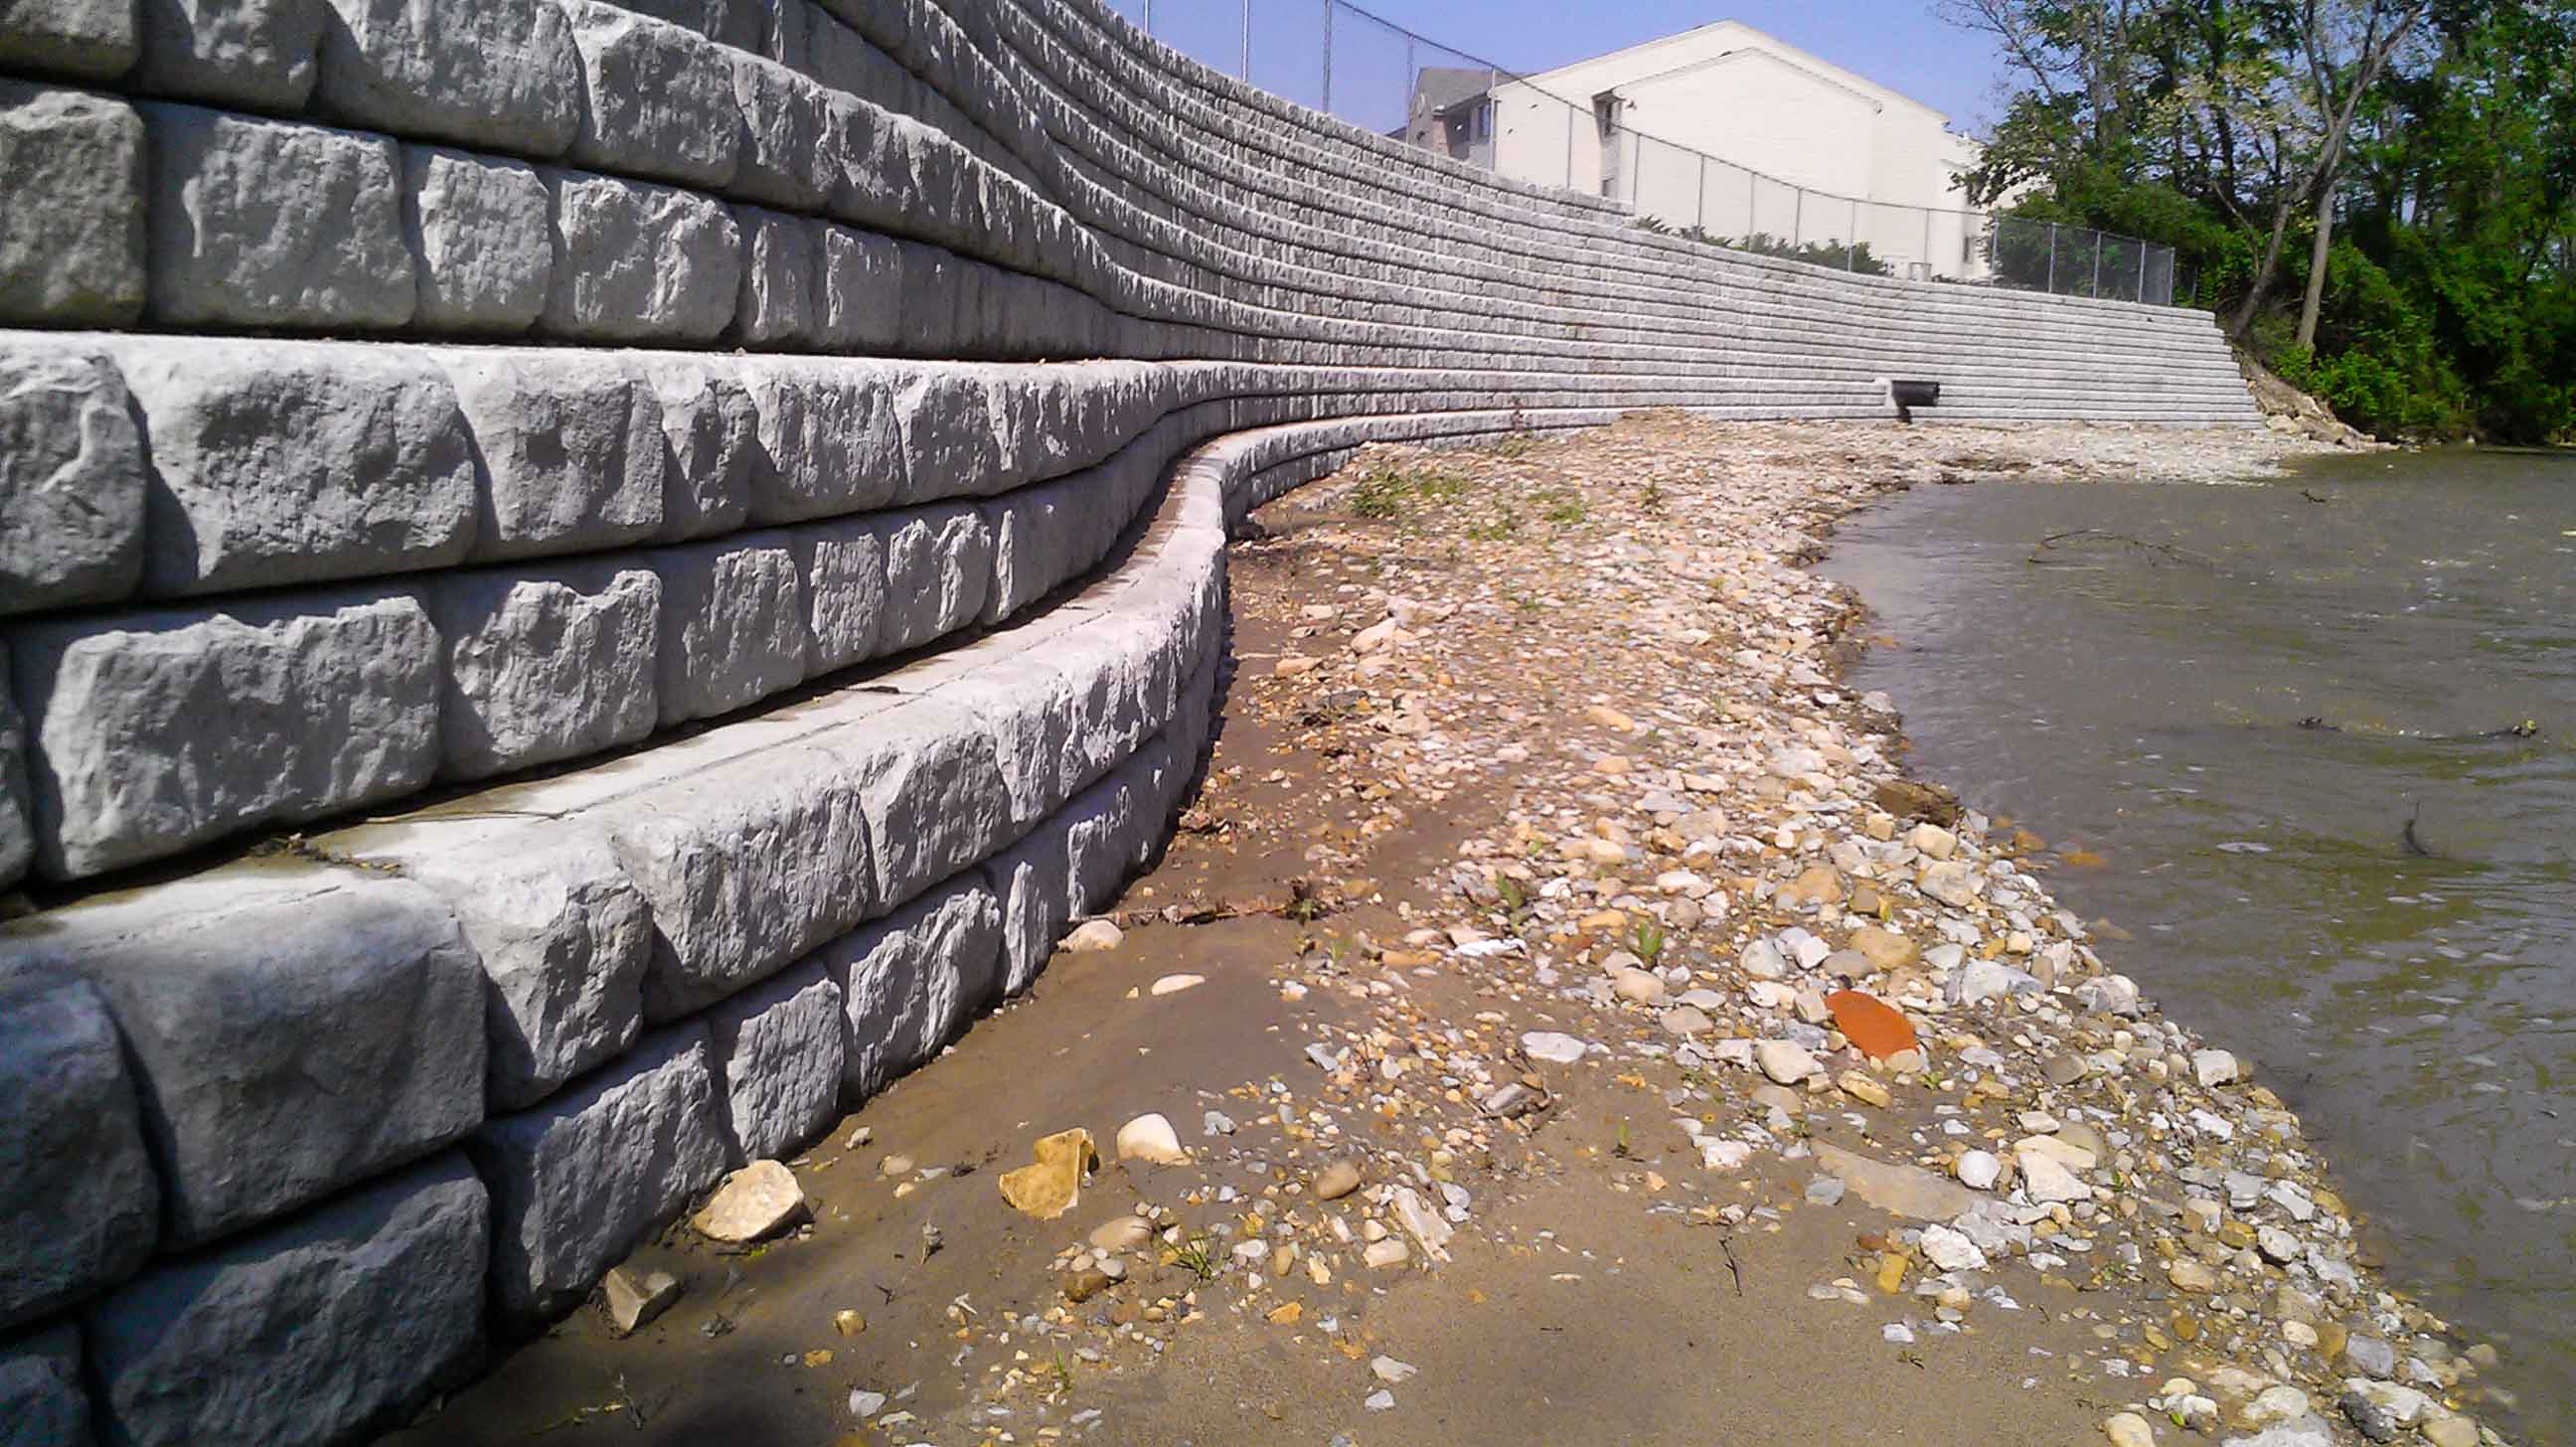 Curved Cobblestone retaining wall with setbacks for erosion control